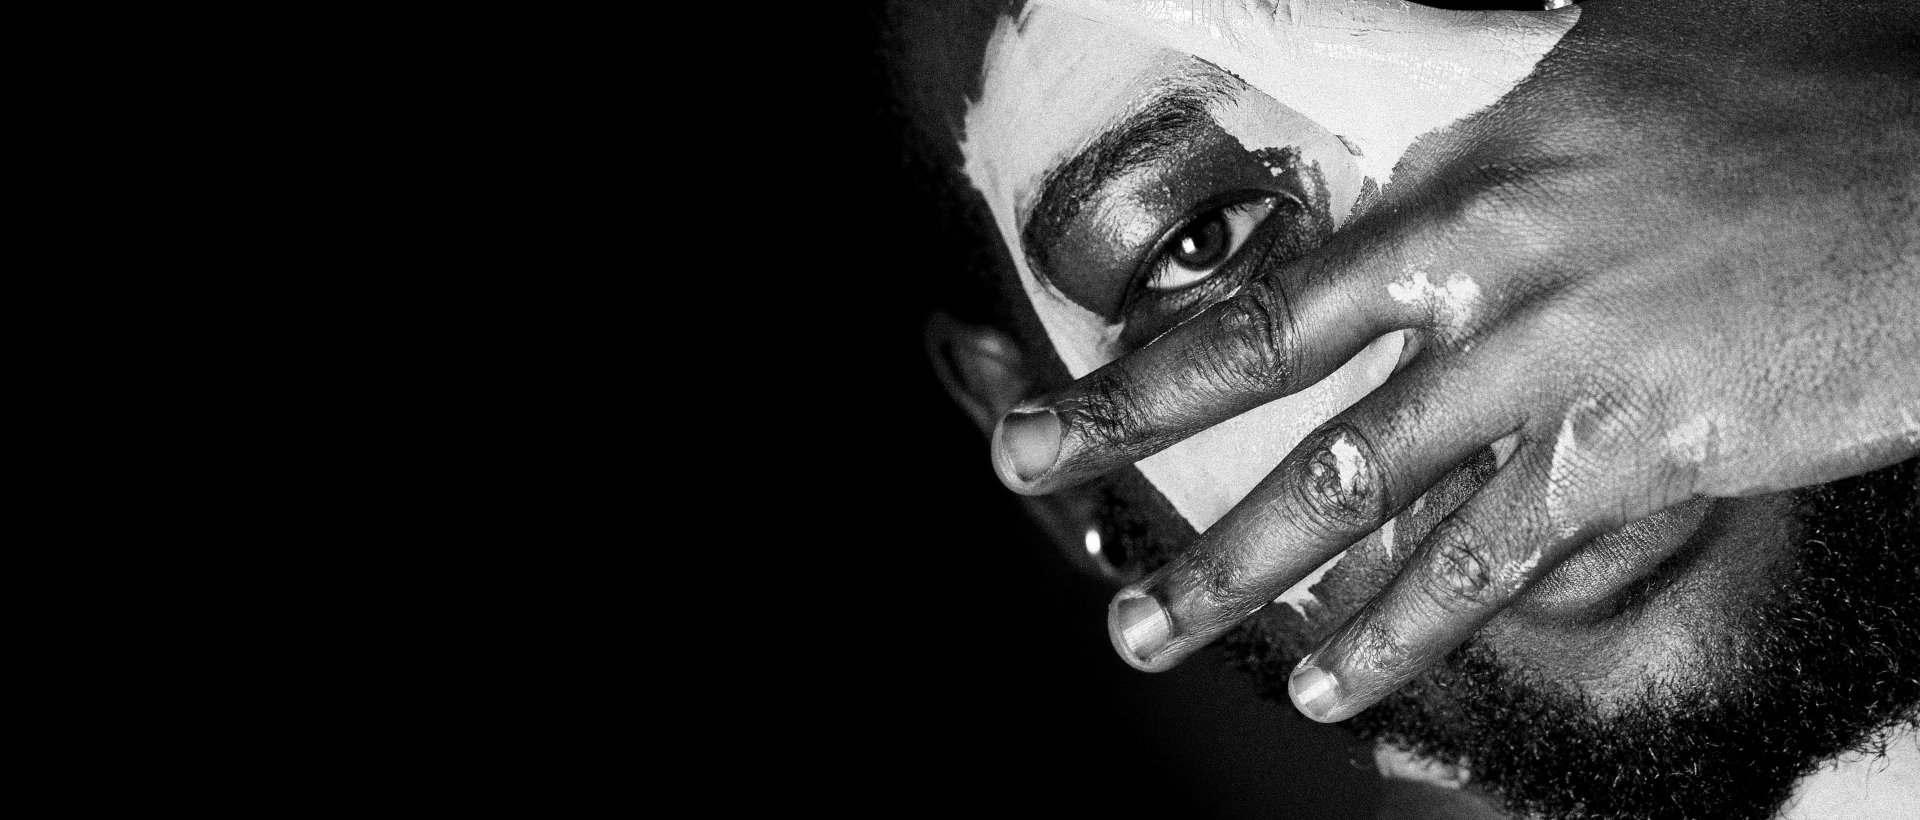 Manhood - man's face covered by hand on black background